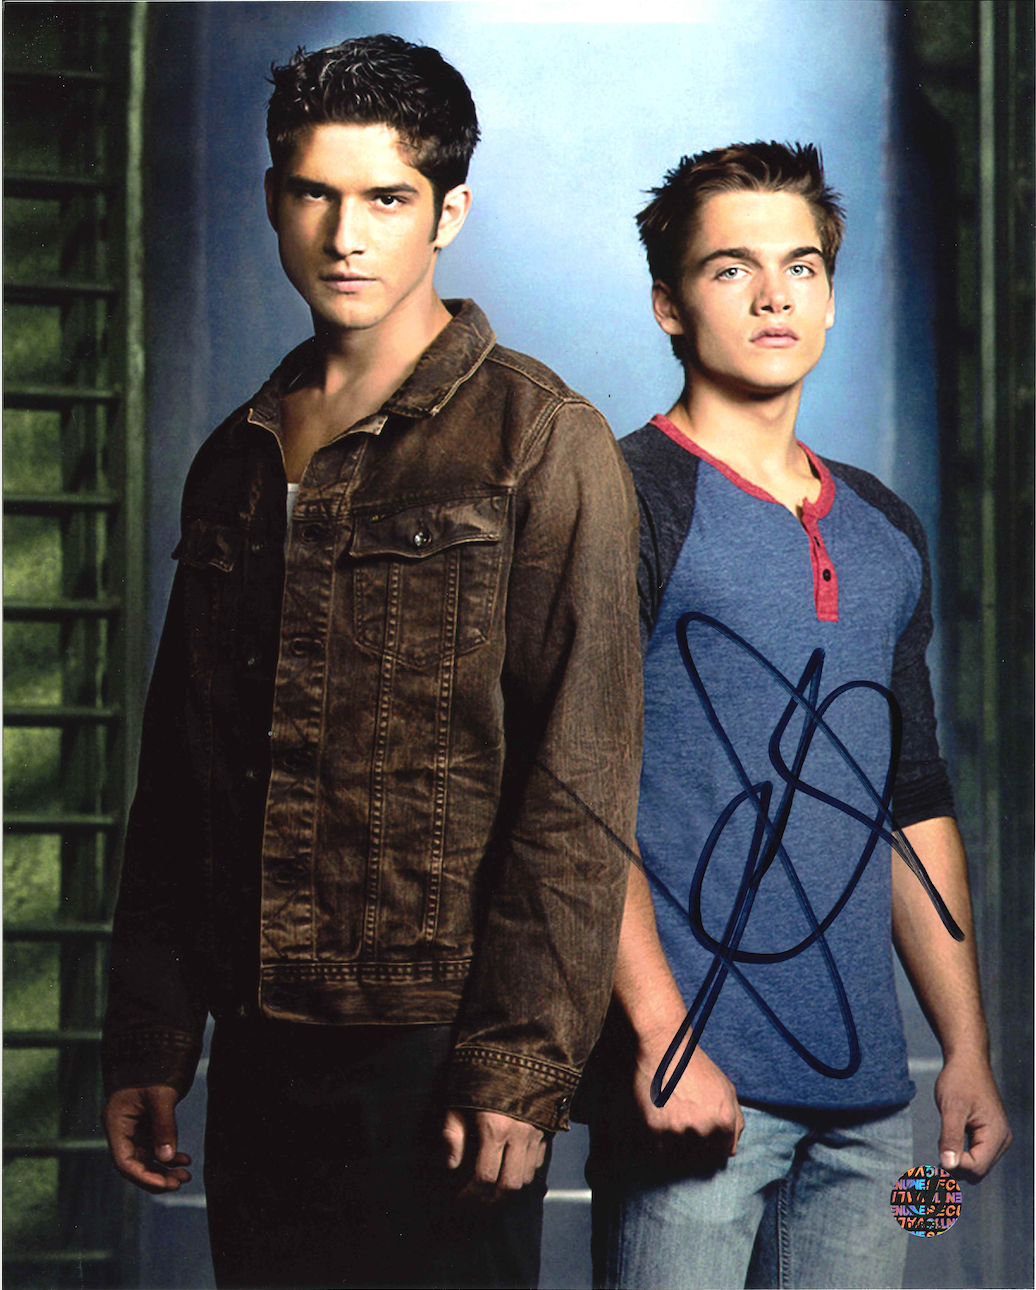 Dylan Sprayberry Signed Teen Wolf Photo